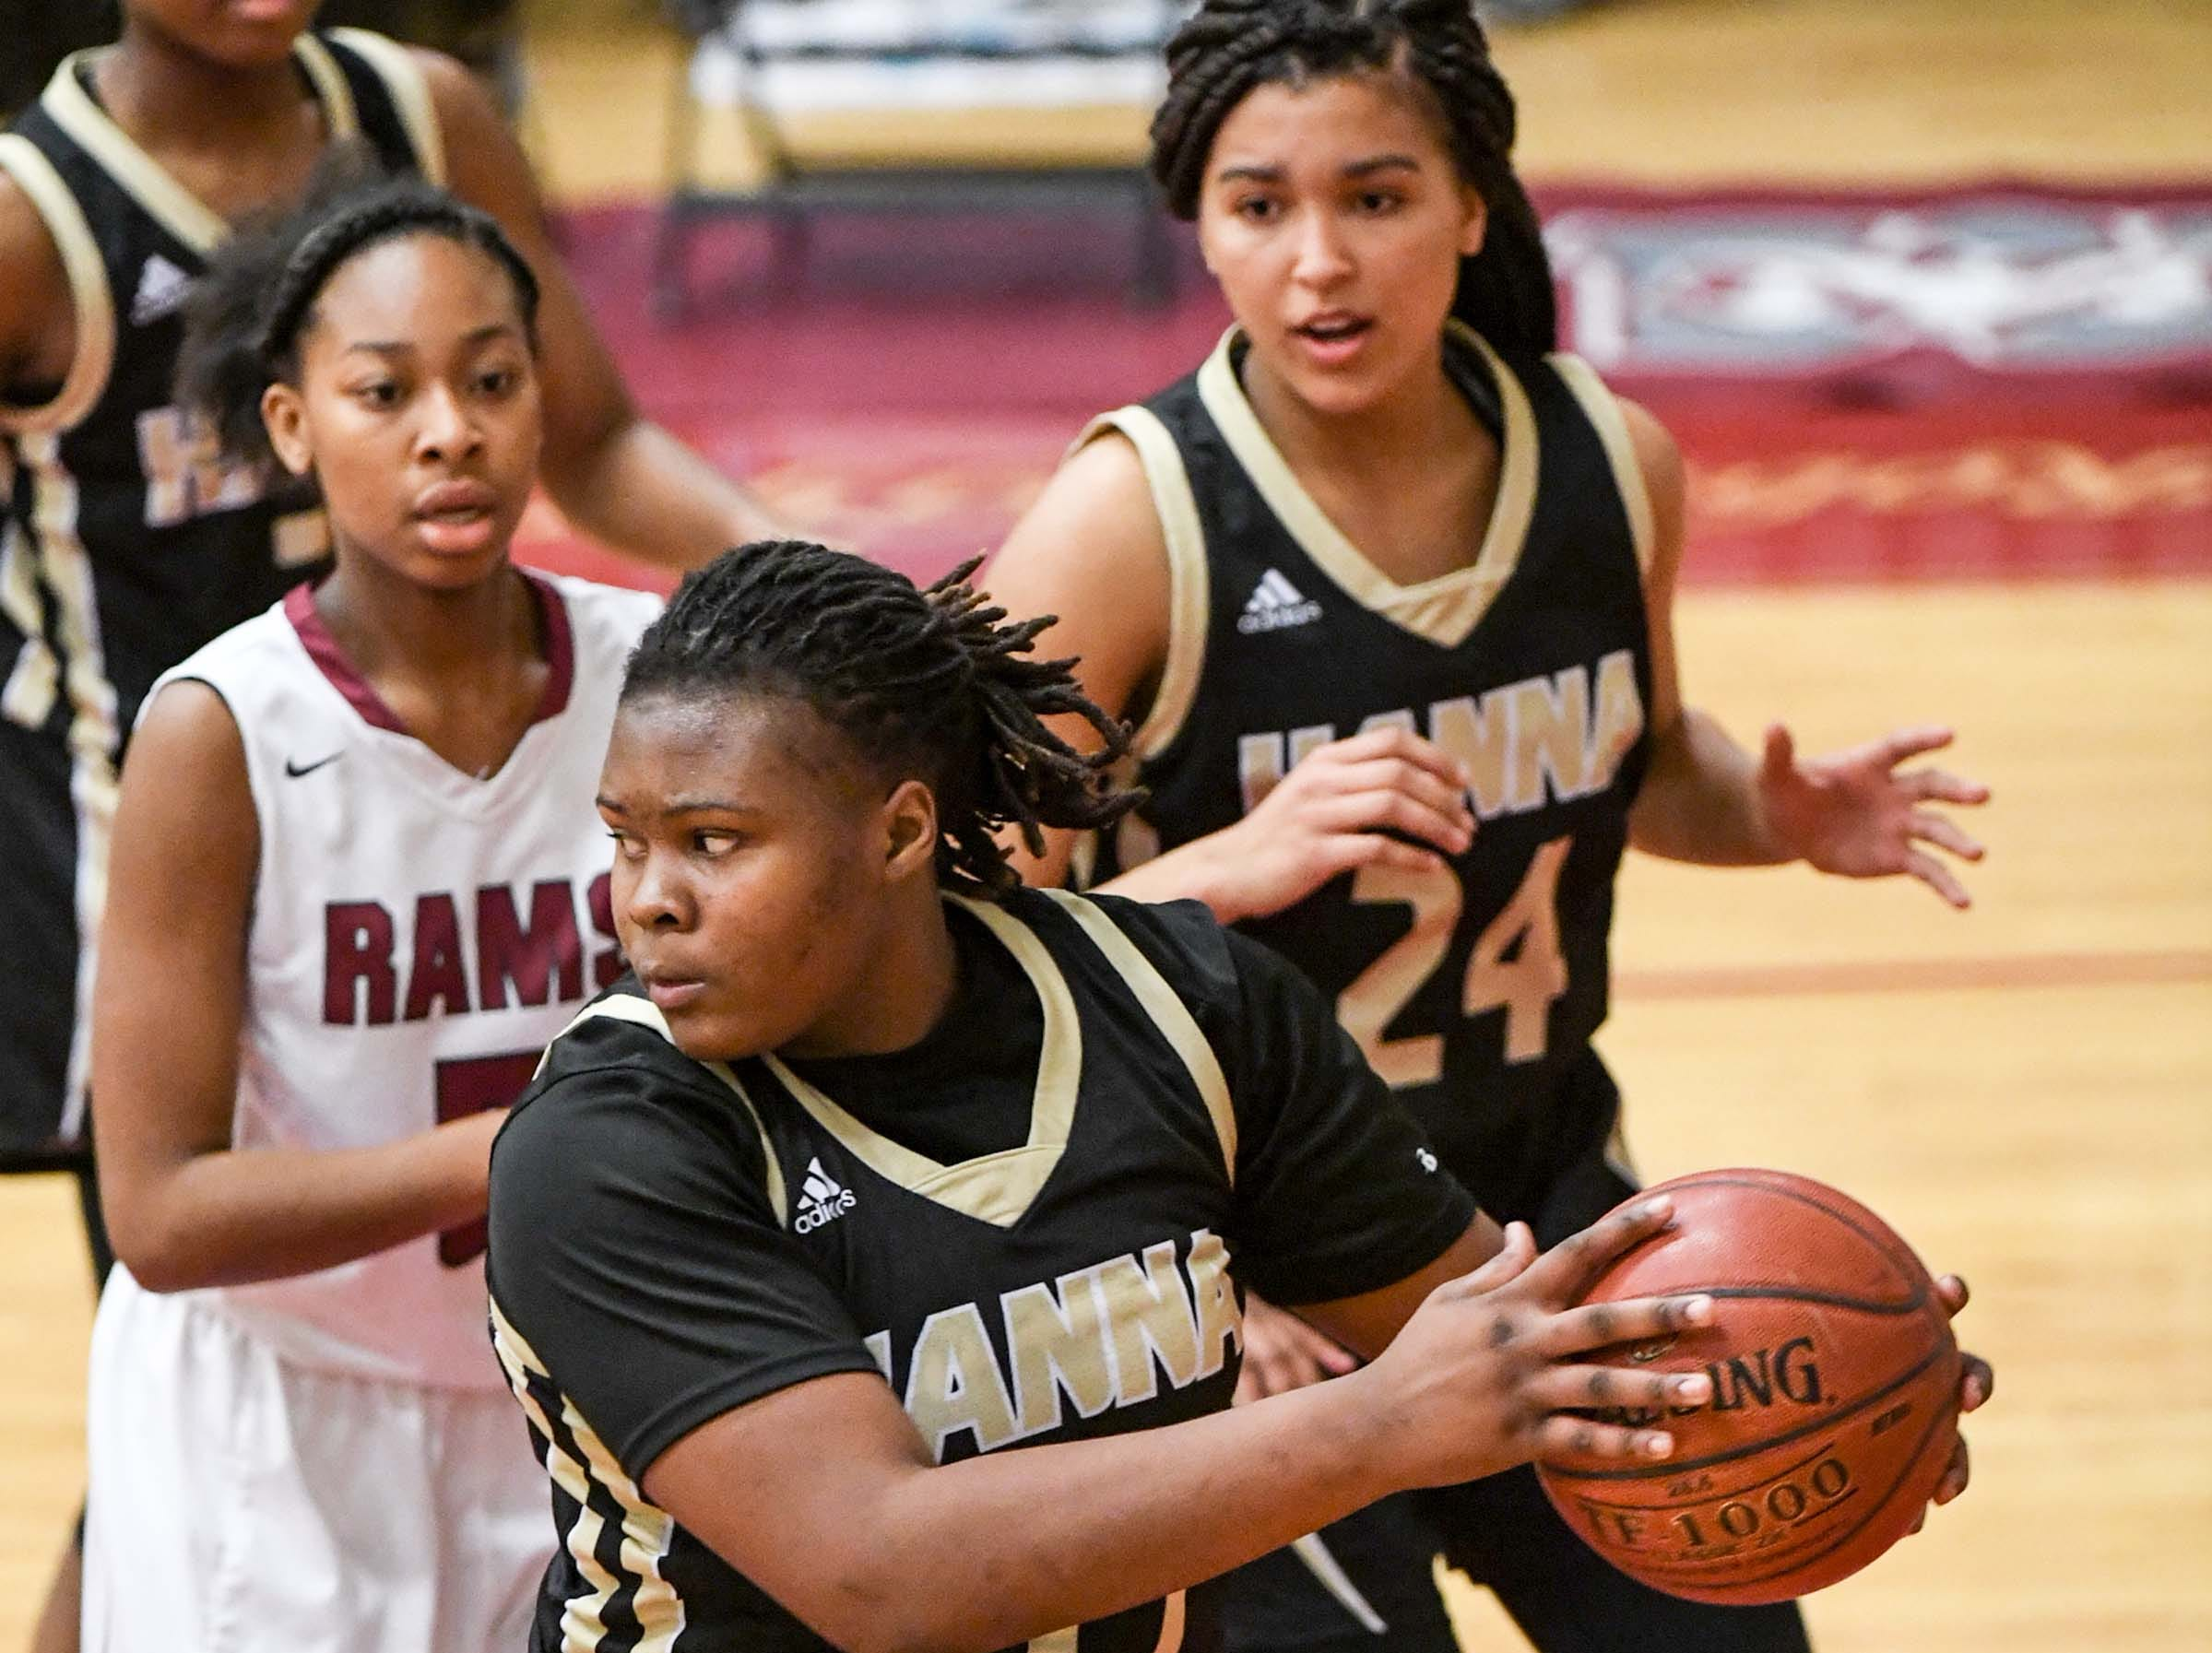 TL Hanna freshman Dro Lee(33) rebounds near Westside senior Chelsea Adger(5) during the first quarter at Westside High School in Anderson on Friday.